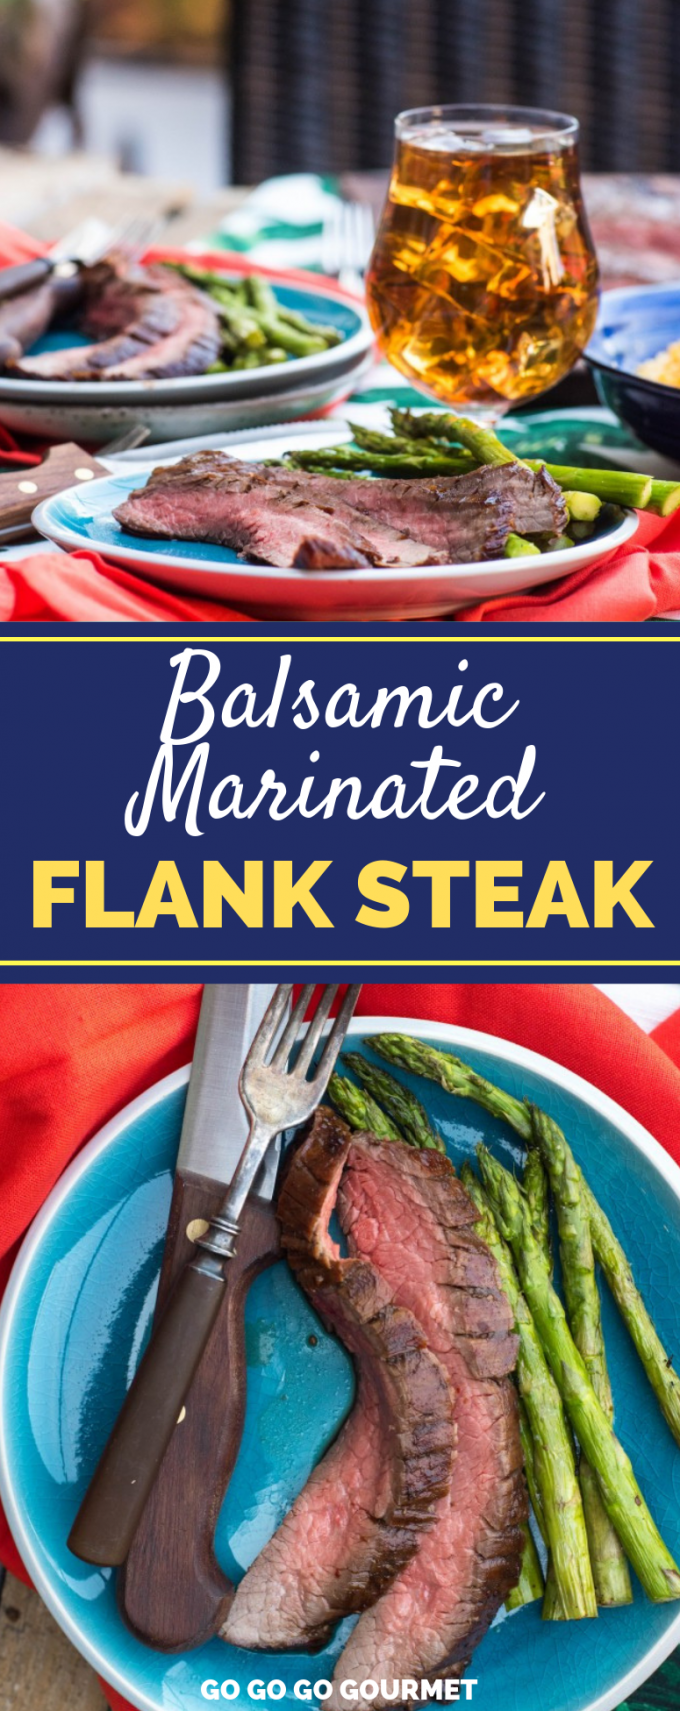 This Sweet Heat Grilled Balsamic Marinated Flank Steak recipe is easy to throw together, and yields the most tender, juicy flank steak you've ever had with a sweet heat that's to die for! #flanksteak #marinatedflanksteak #grilledsteak #flanksteakrecipes via @gogogogourmet